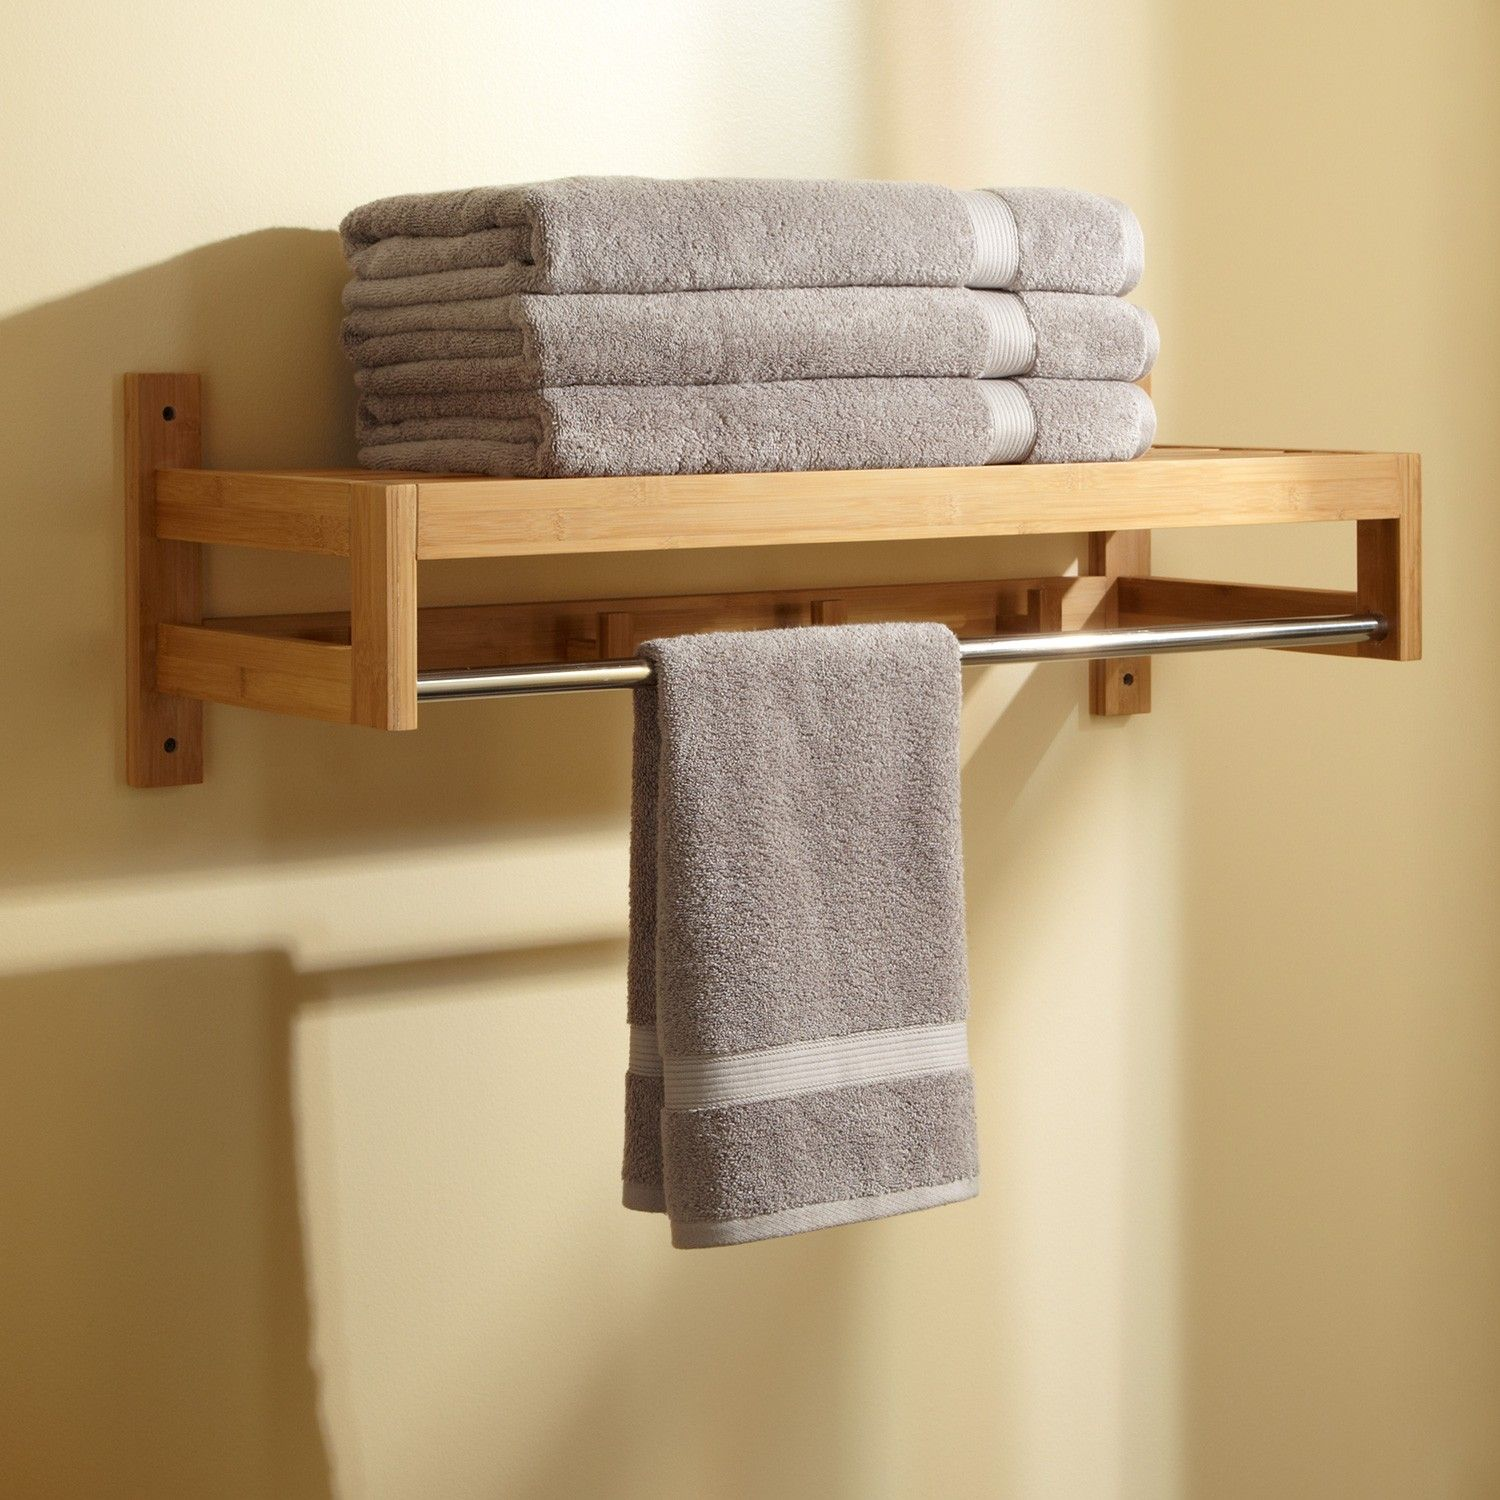 Bathroom Towel Hooks Bamboo Rack With New Accessories